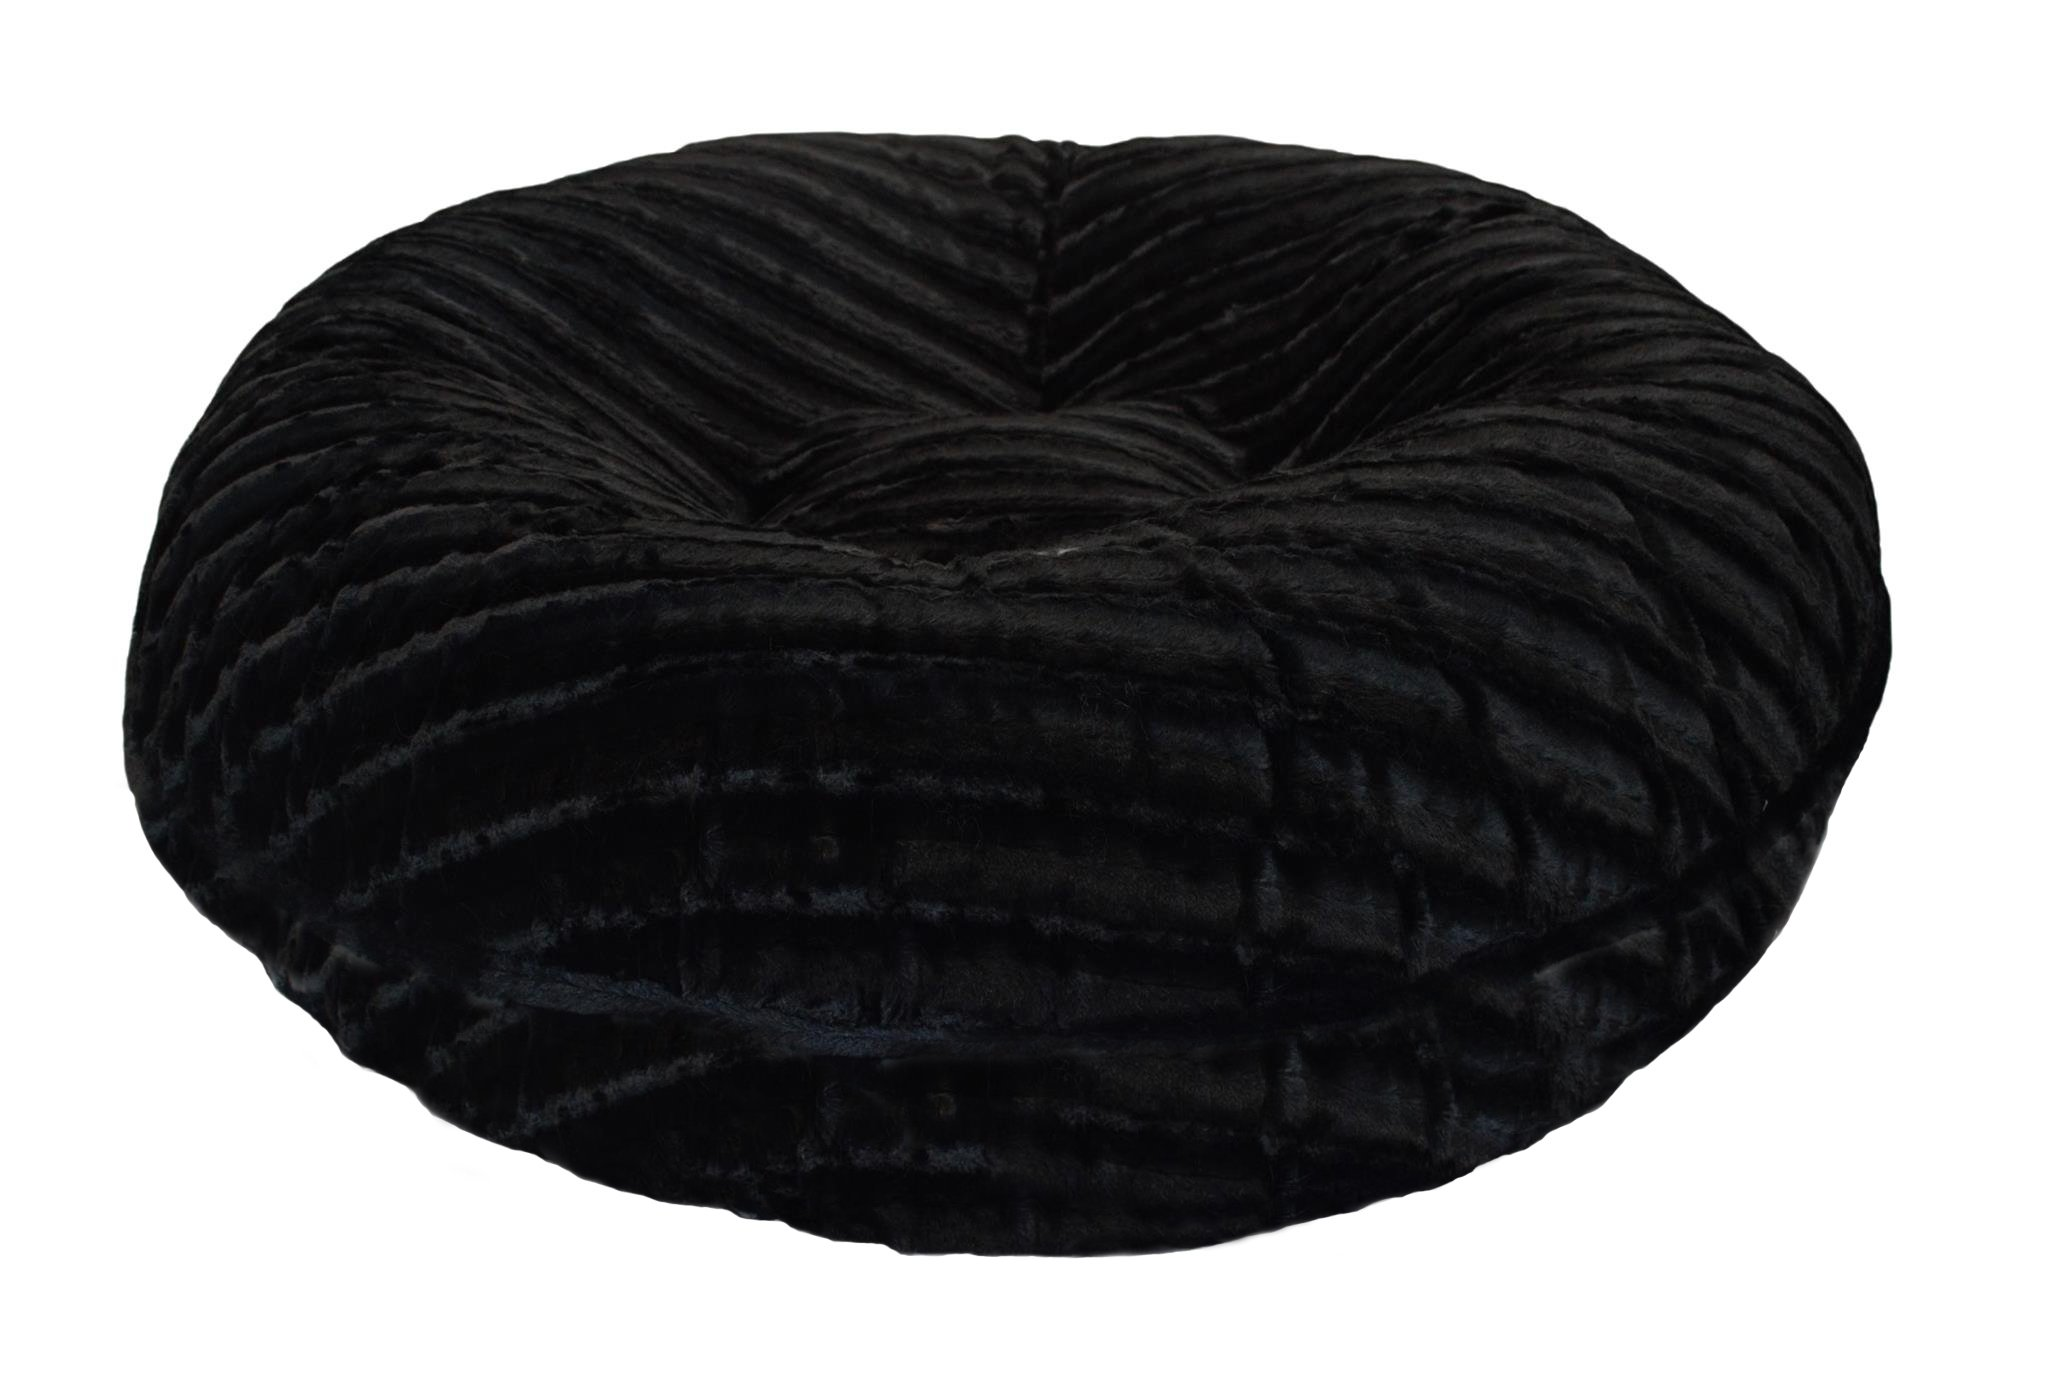 BESSIE AND BARNIE 24-Inch Bagel Bed for Pets, X-Small, Black Puma by BESSIE AND BARNIE (Image #1)